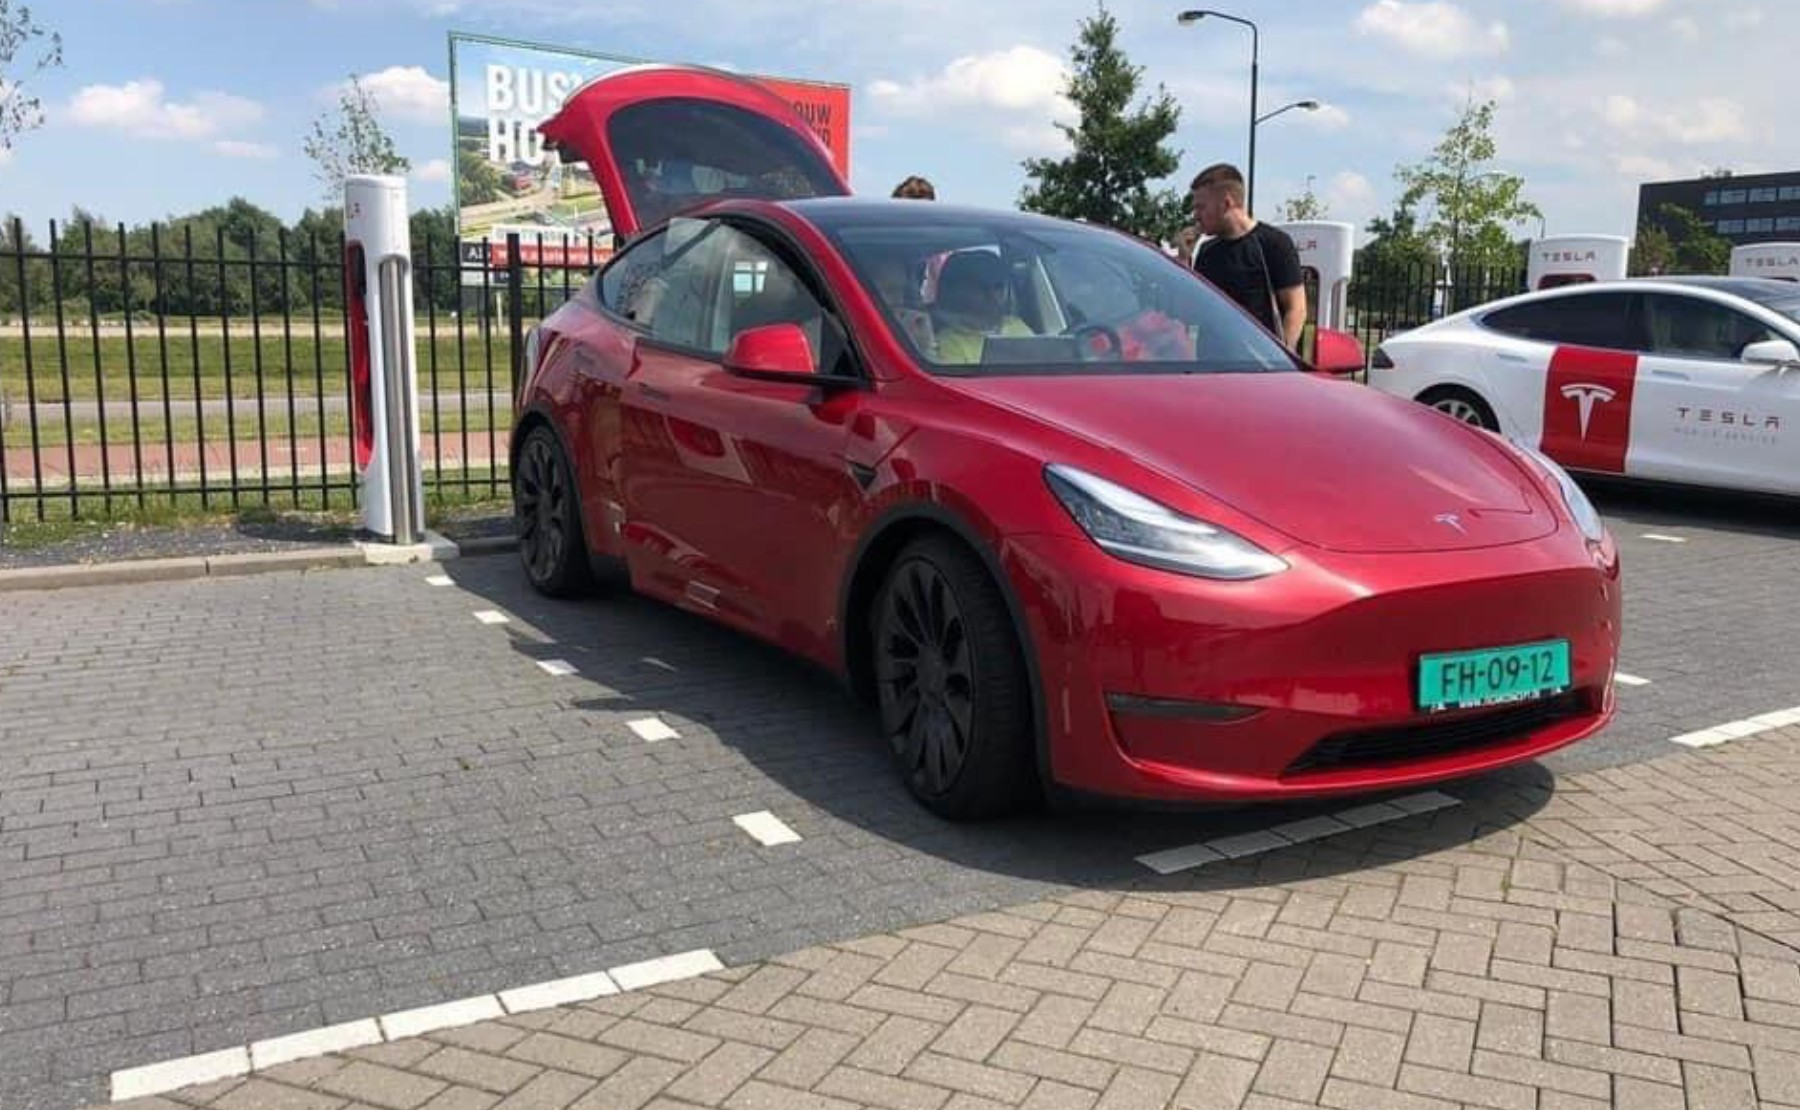 Tesla Model Y will have a rear-wheel drive (RWD) version with over 300 miles of range